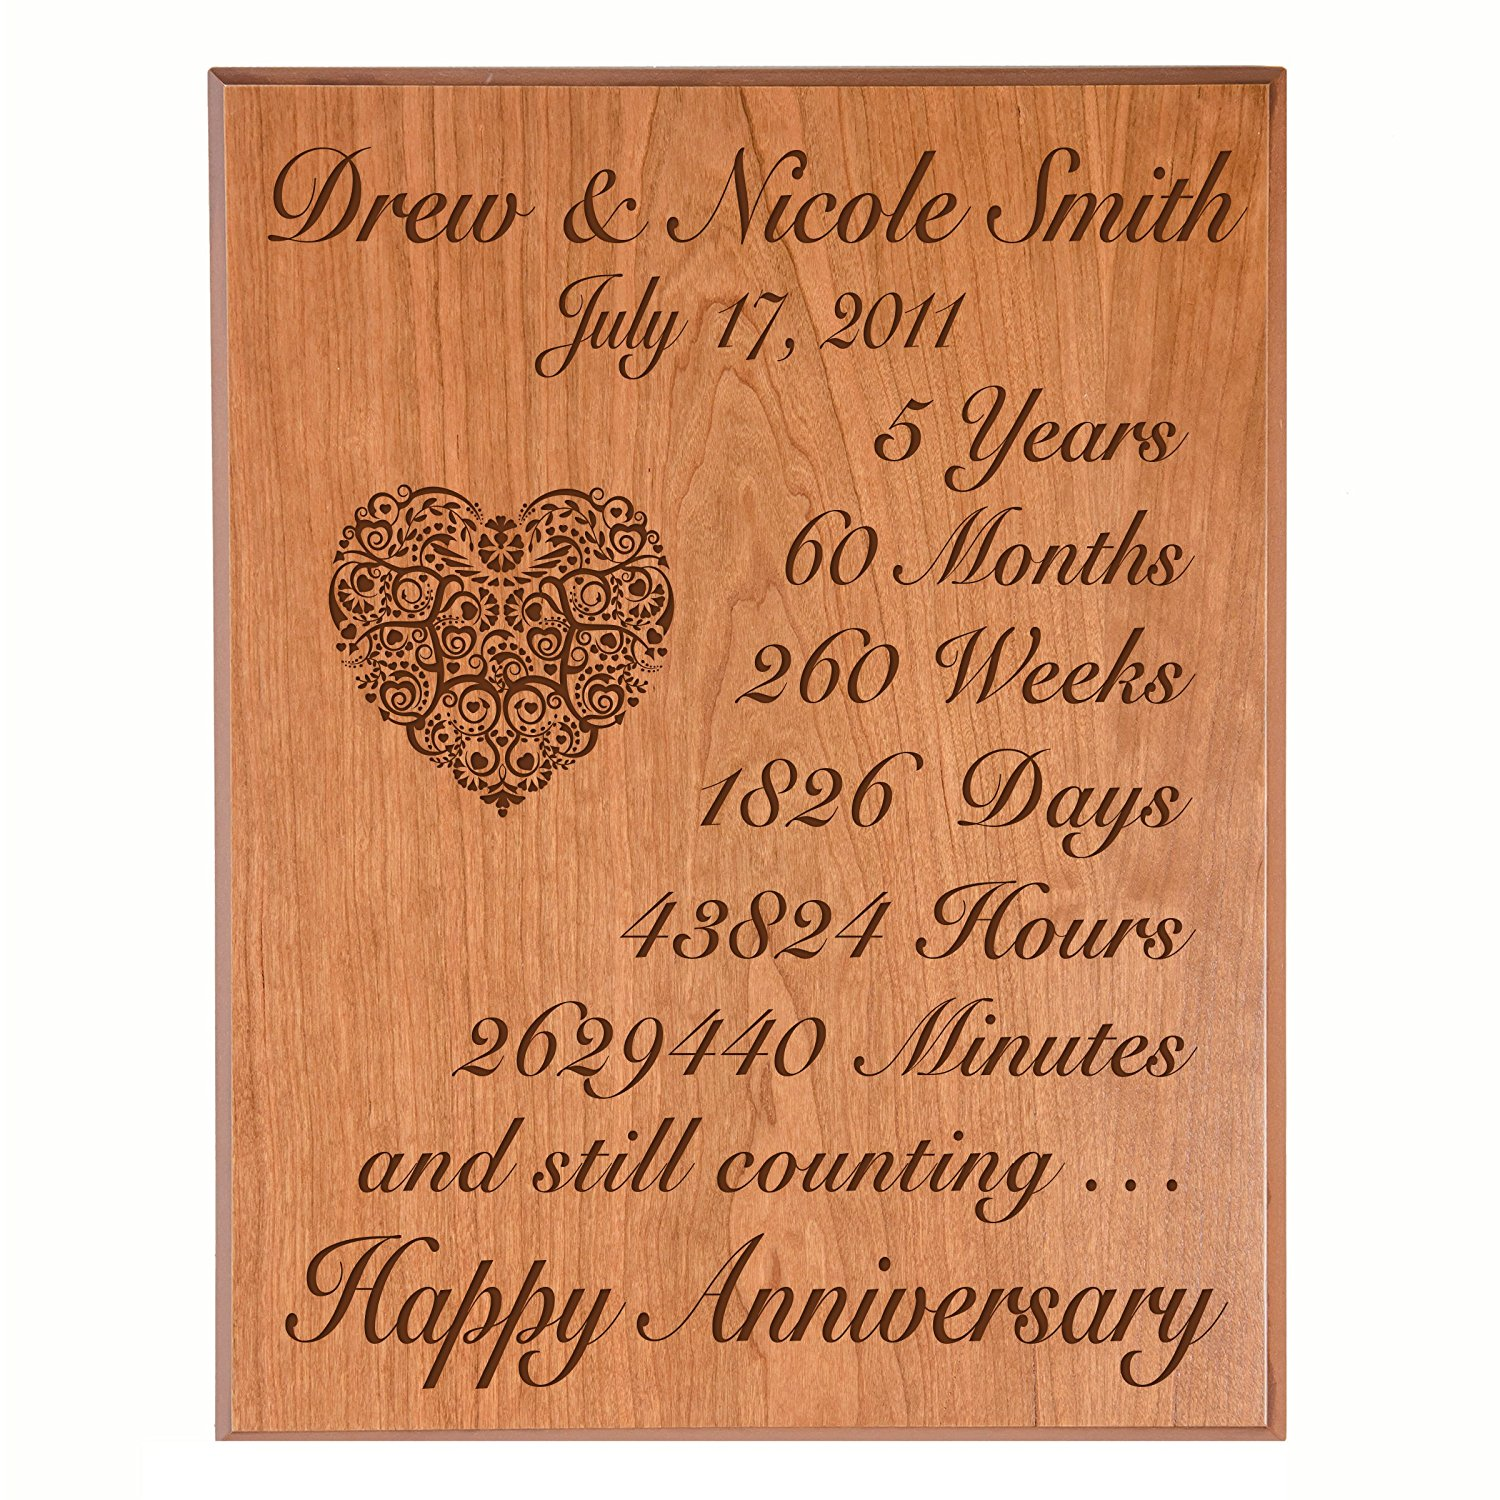 Buy Personalized 5th Wedding Anniversary Cherry Wood Wall Cross Gift For Couple 5 Year Anniversary Gifts For Her Anniversary Gifts For Him Truly Madly Deeply In Love With You 12 X 17